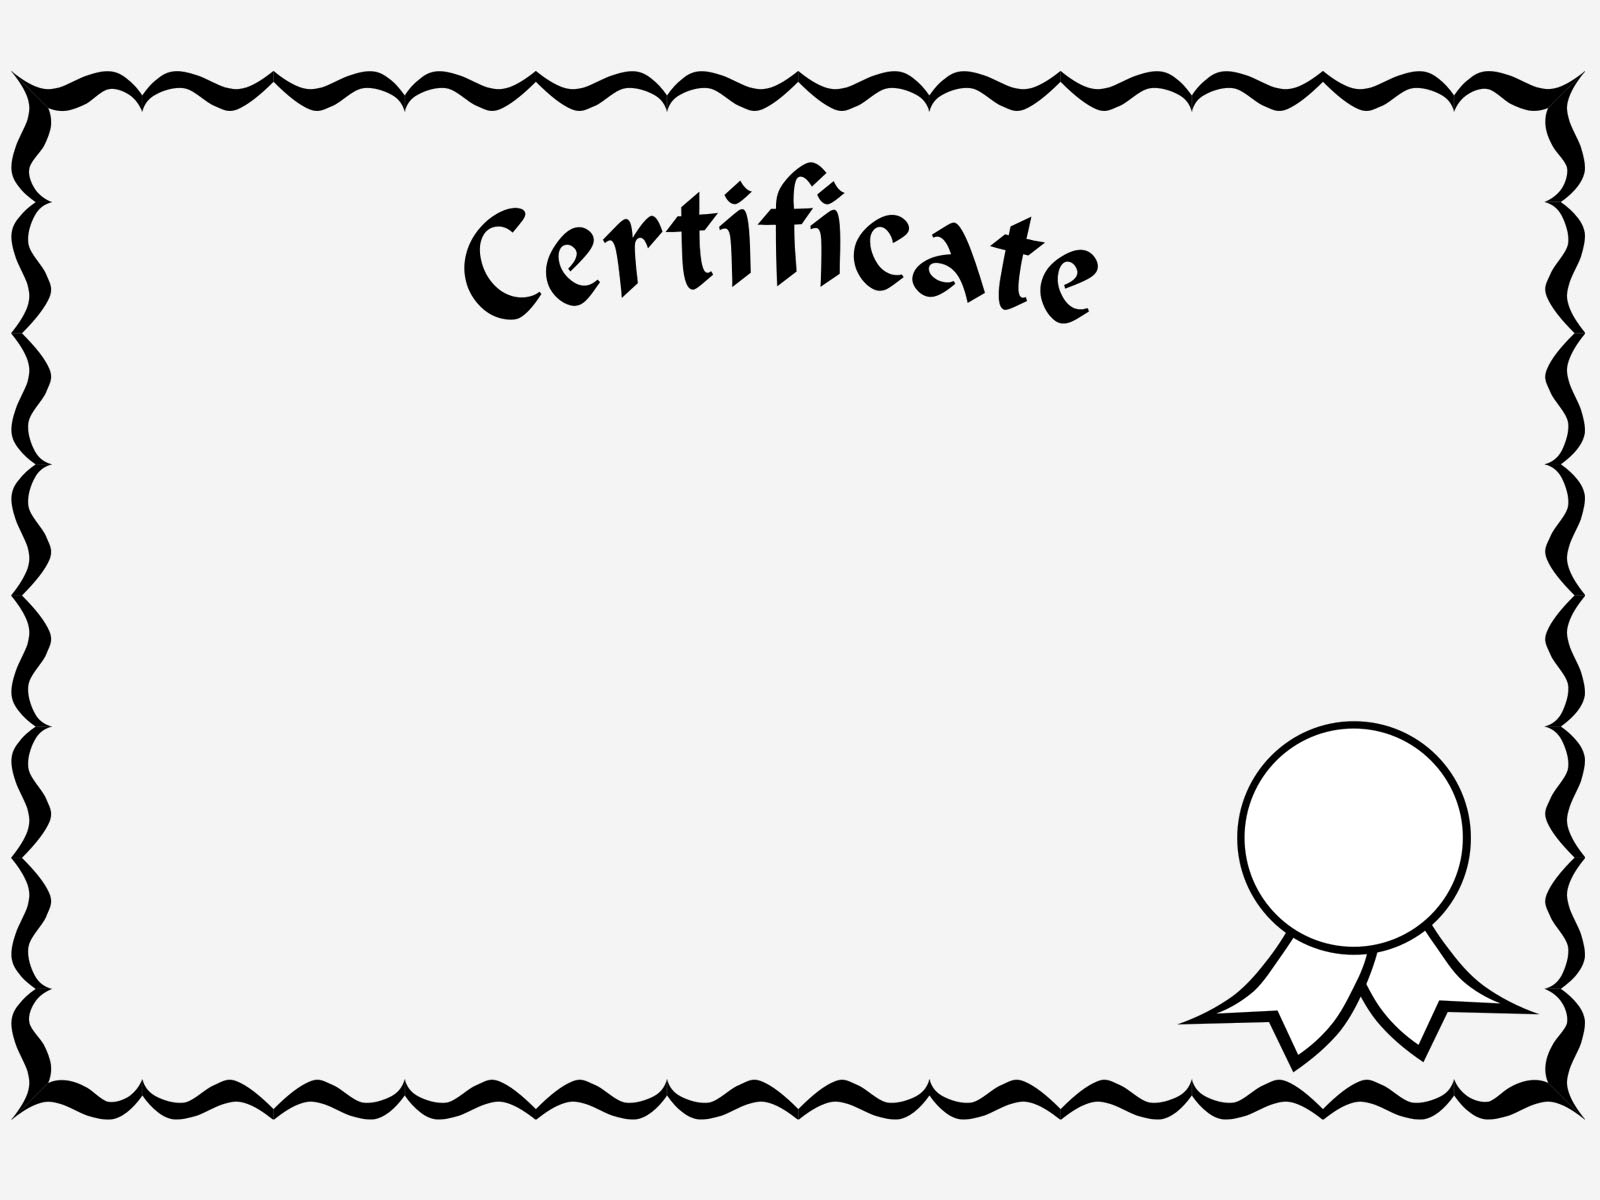 birth certificate word template – Birth Certificate Word Template